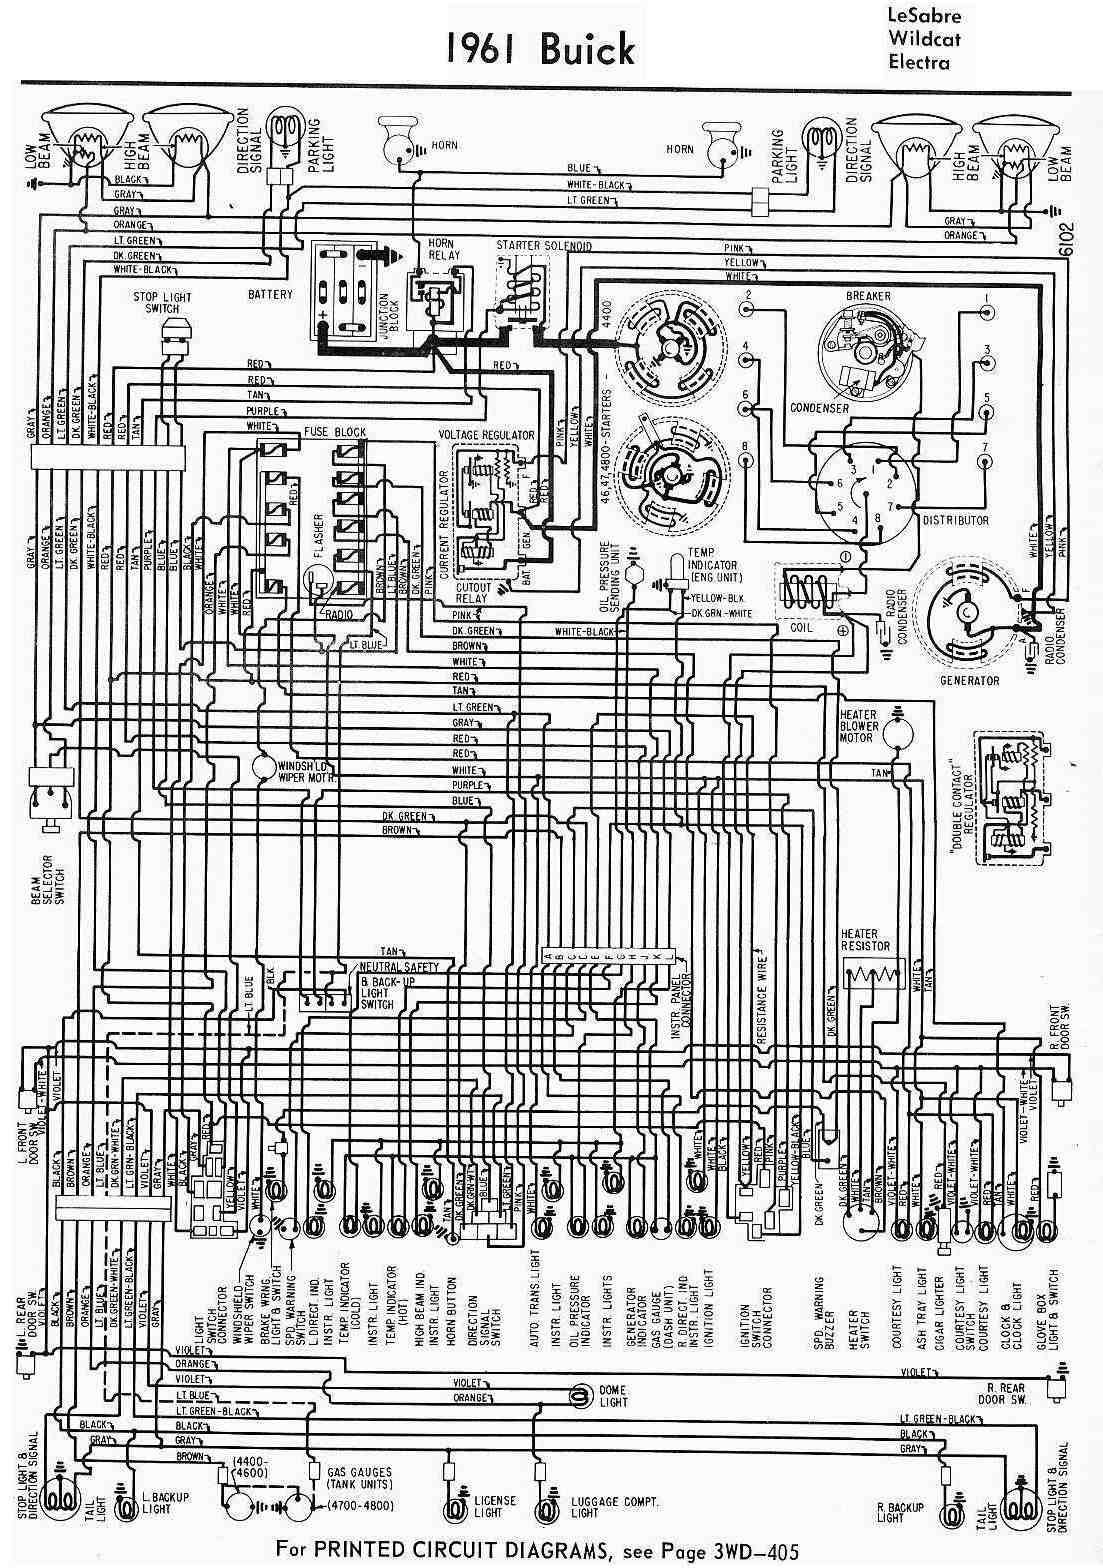 1964 Freightliner Wiring Diagram - Find Wiring Diagram •